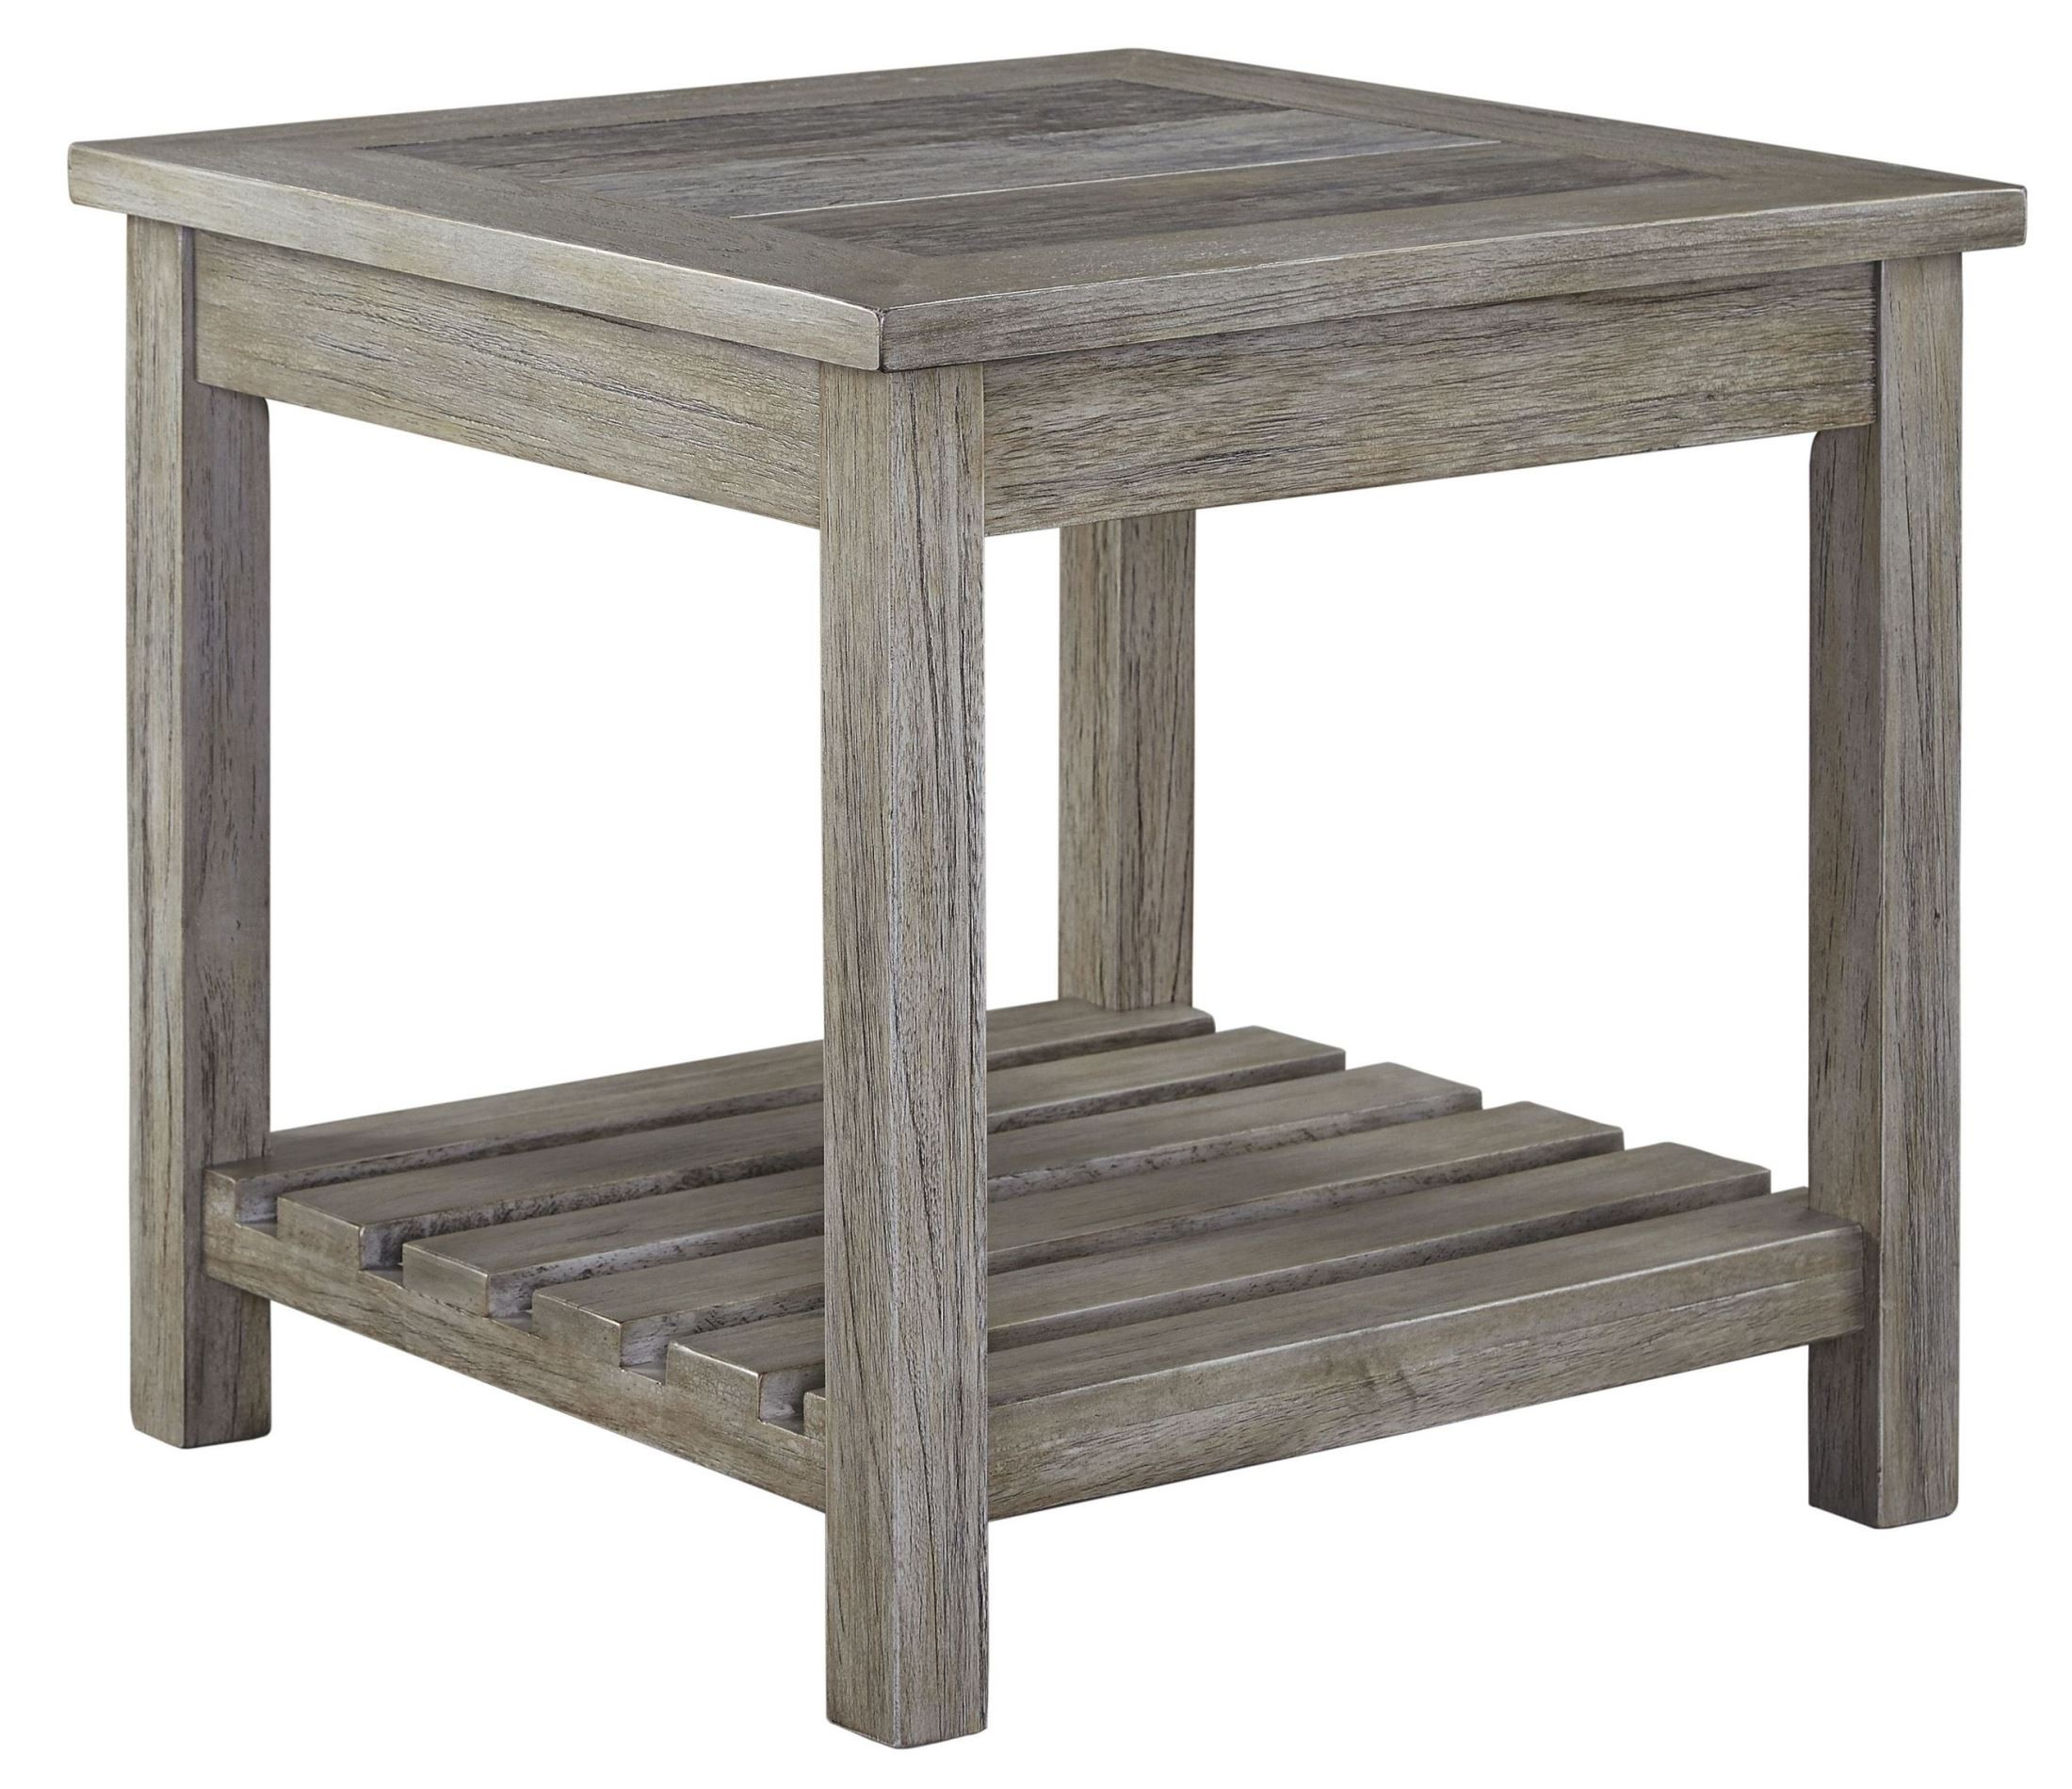 Veldar Whitewash Square End Table From Ashley (t7482. Kitchen Cabinet Ratings Reviews. Cheap Kitchen Cabinets Los Angeles. Home Depot Instock Kitchen Cabinets. Sale Kitchen Cabinets. How To Install Base Kitchen Cabinets. Hgtv Kitchens With White Cabinets. Maple Kitchen Cabinet Doors. Free Kitchen Cabinet Samples